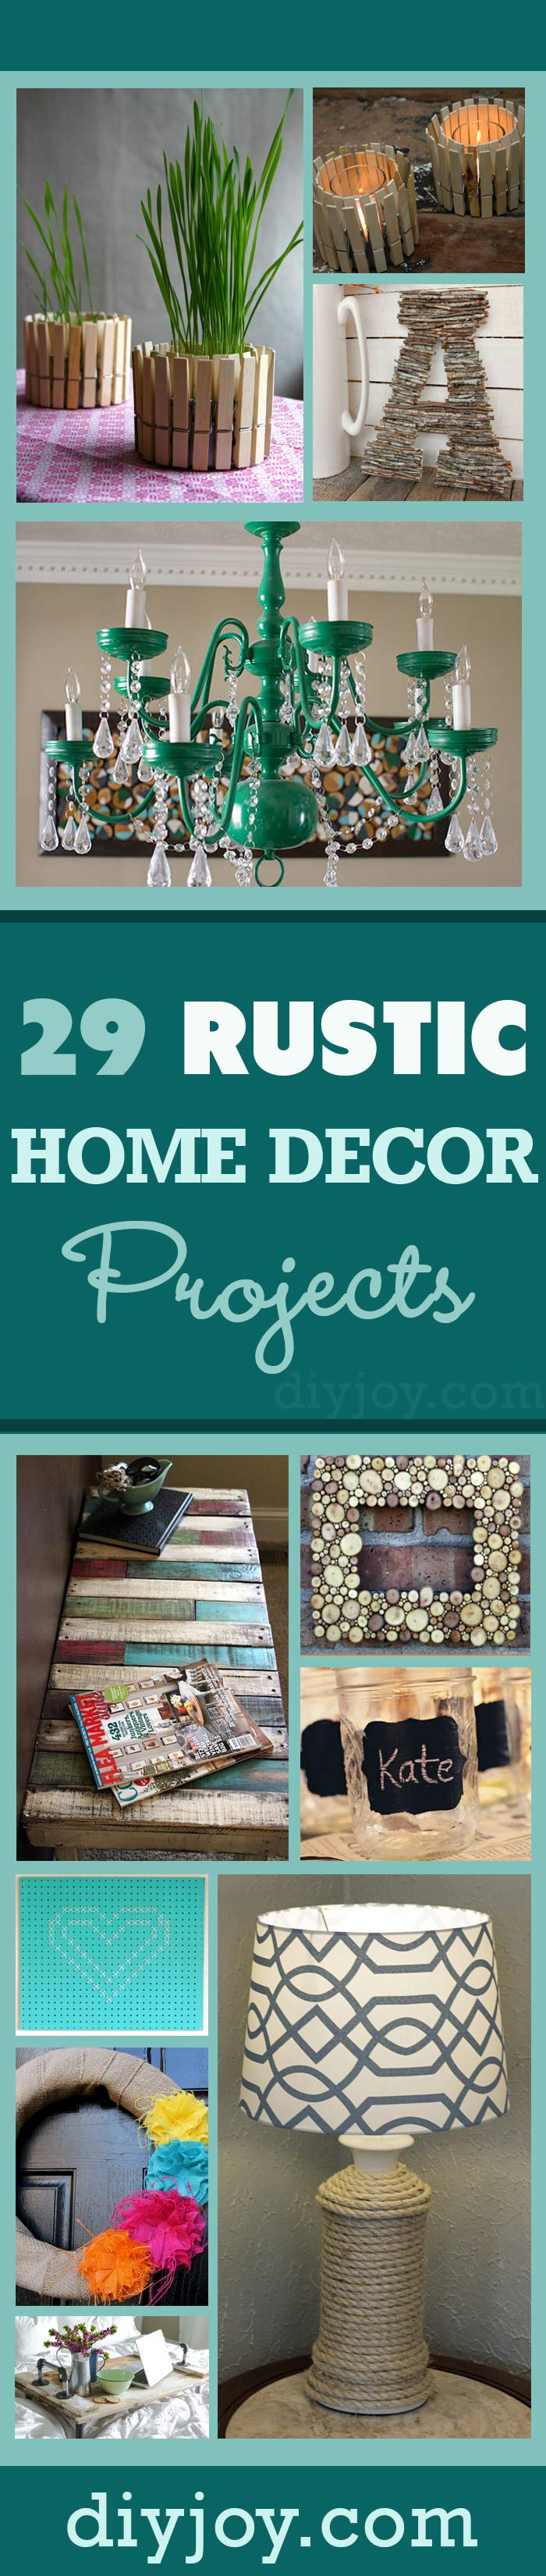 Rustic Home Decor Projects Ideas